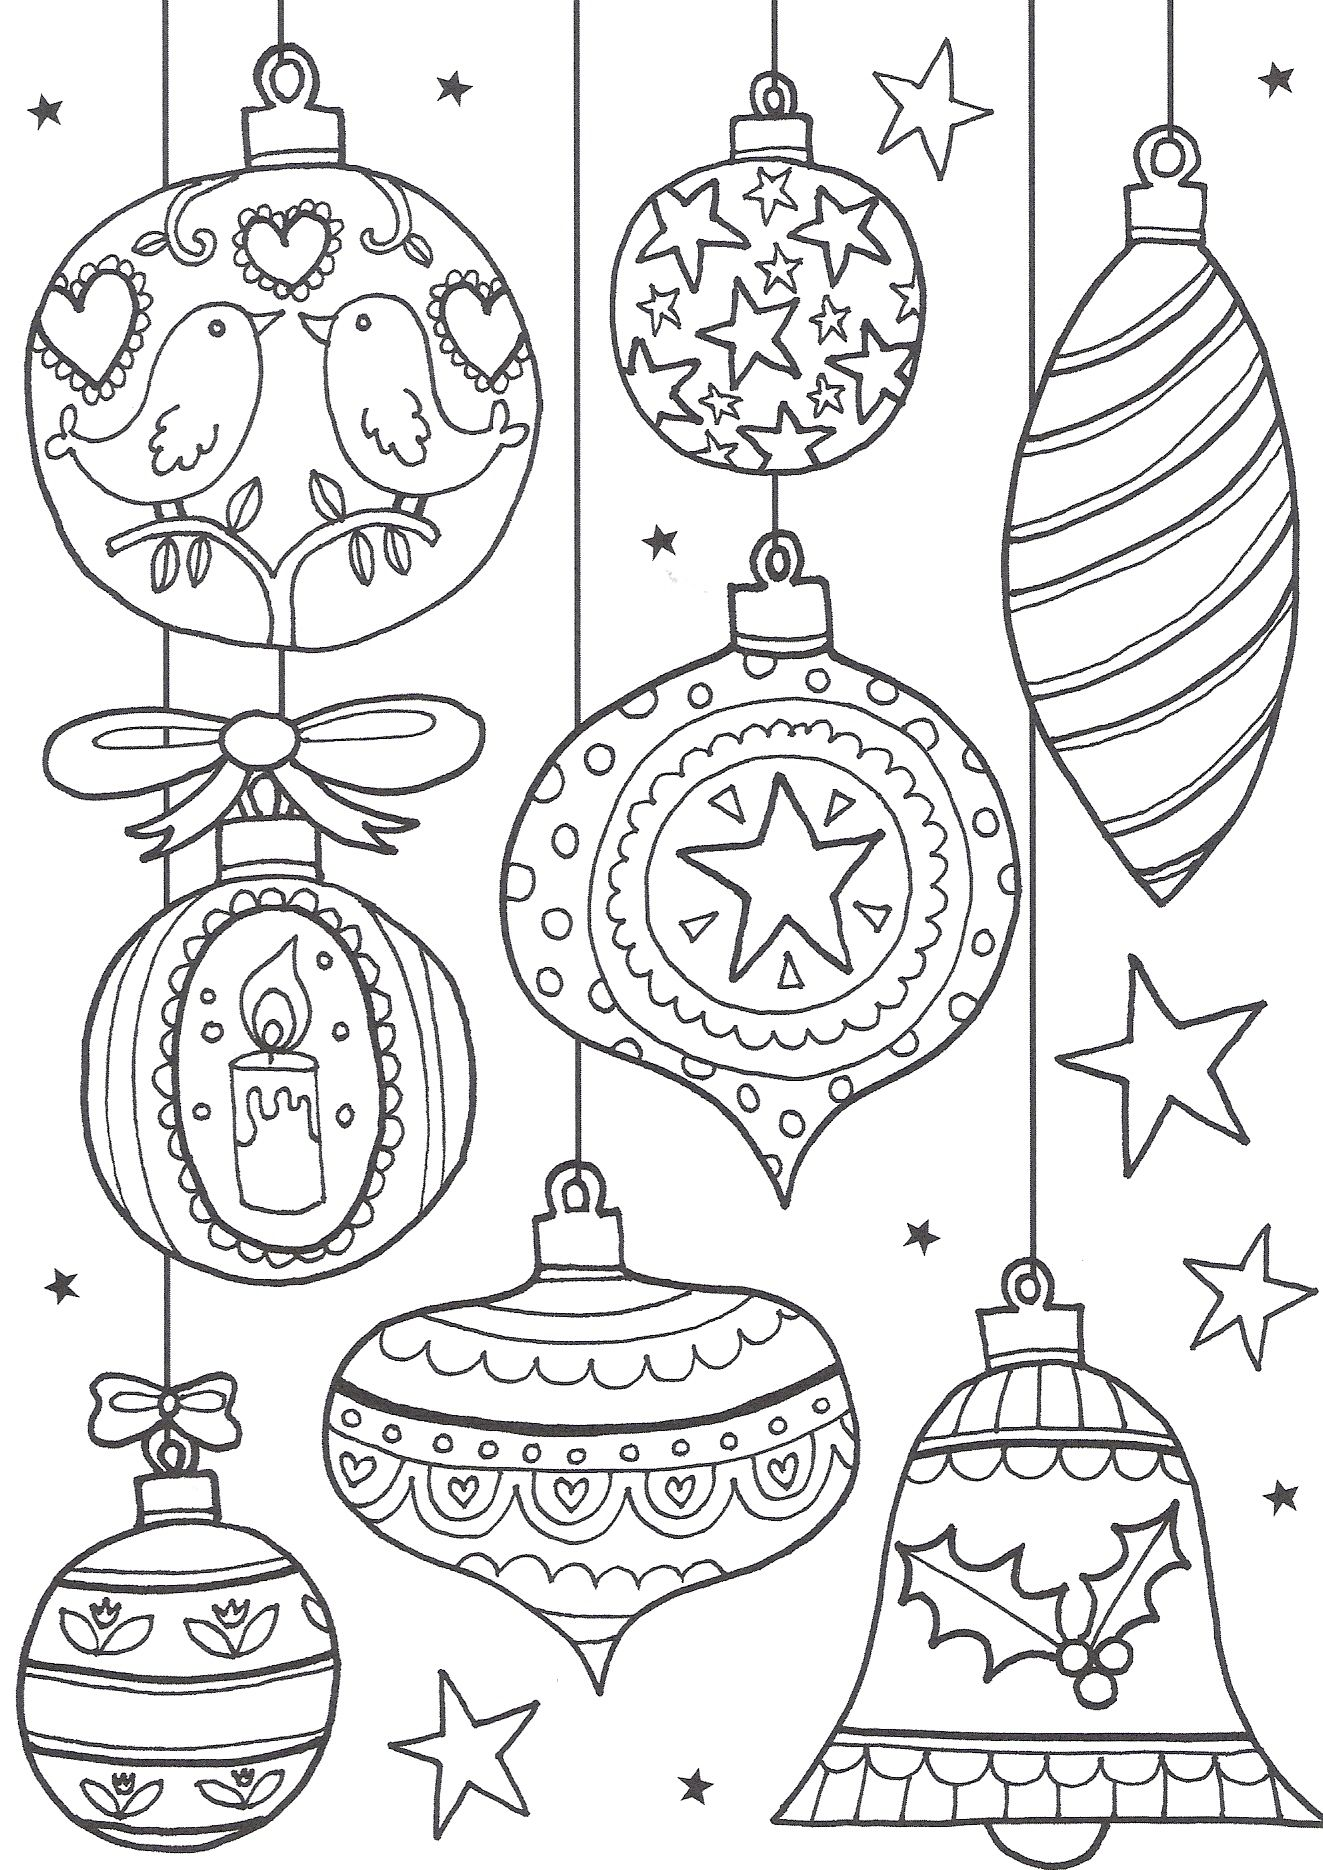 adult coloring pages christmas Free Christmas Colouring Pages for Adults – The Ultimate Roundup  adult coloring pages christmas